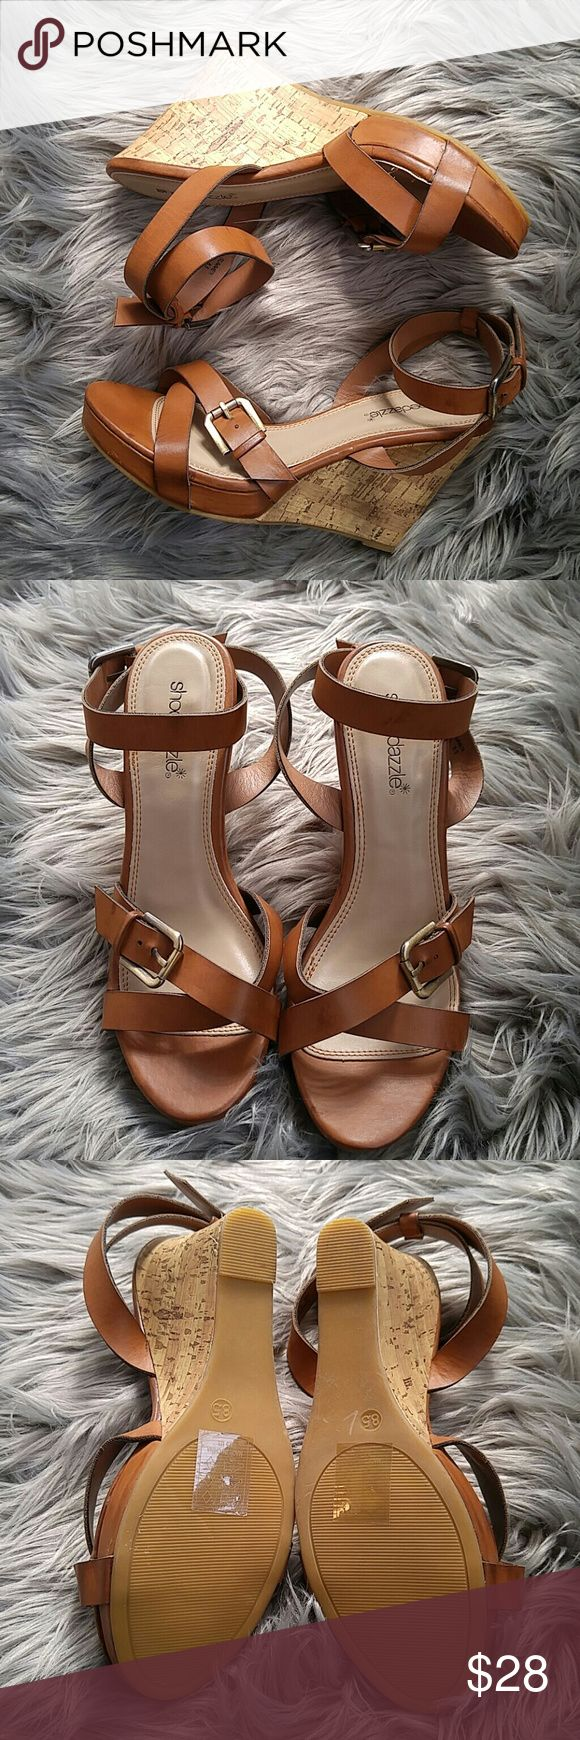 "Shoe Dazzle cork wedge sandals in camel Camel/cognac color. Beautiful. Never worn. ""Summer"". Shoe Dazzle Shoes Wedges"